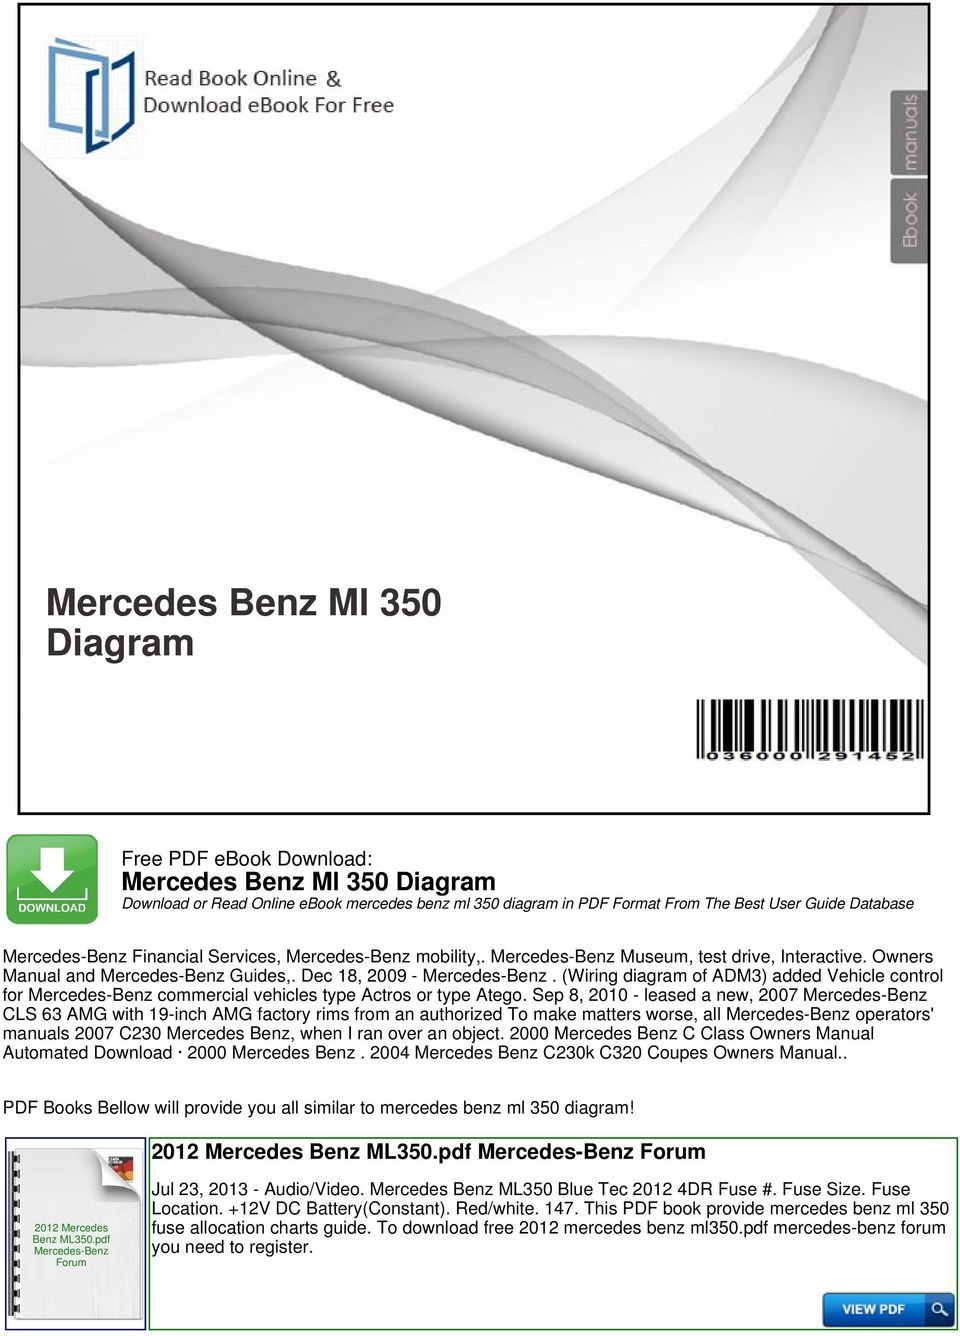 Mercedes benz ml 350 diagram pdf sep 8 2010 leased a new 2007 cls 63 amg with 19 fandeluxe Images